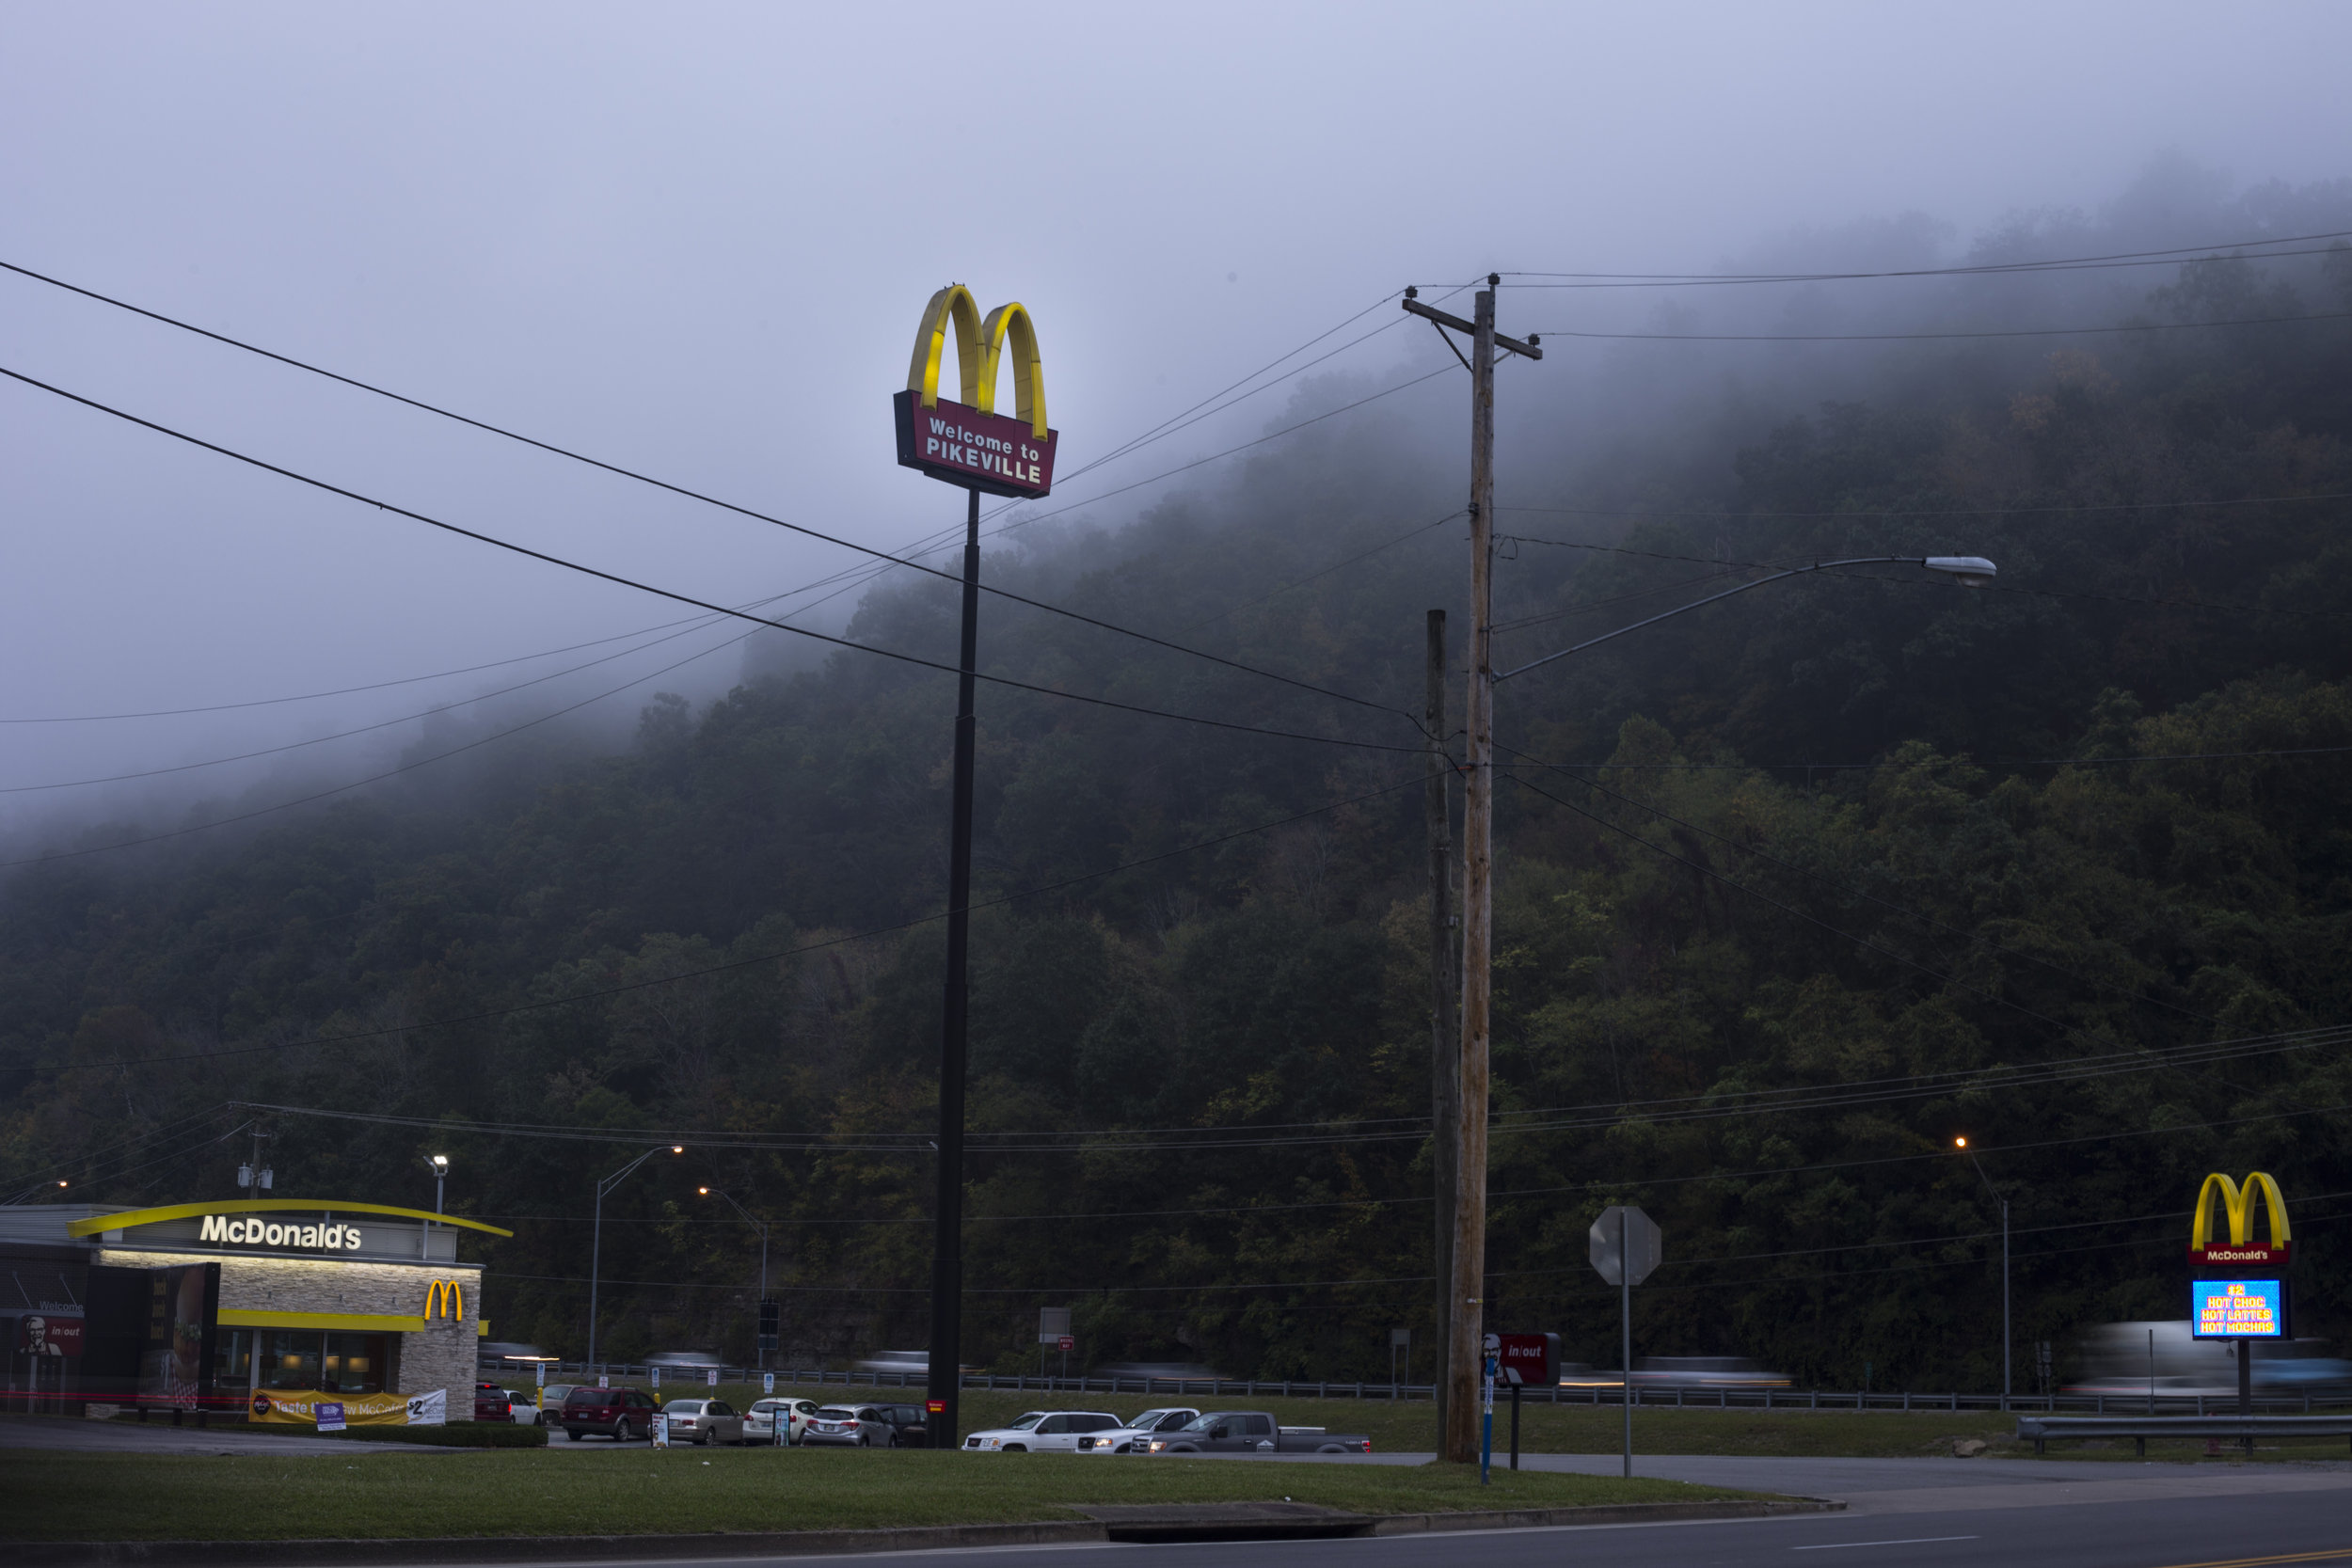 A McDonalds is seen greeting visitors to Pikeville, Ky., on Friday, September 22, 2017.